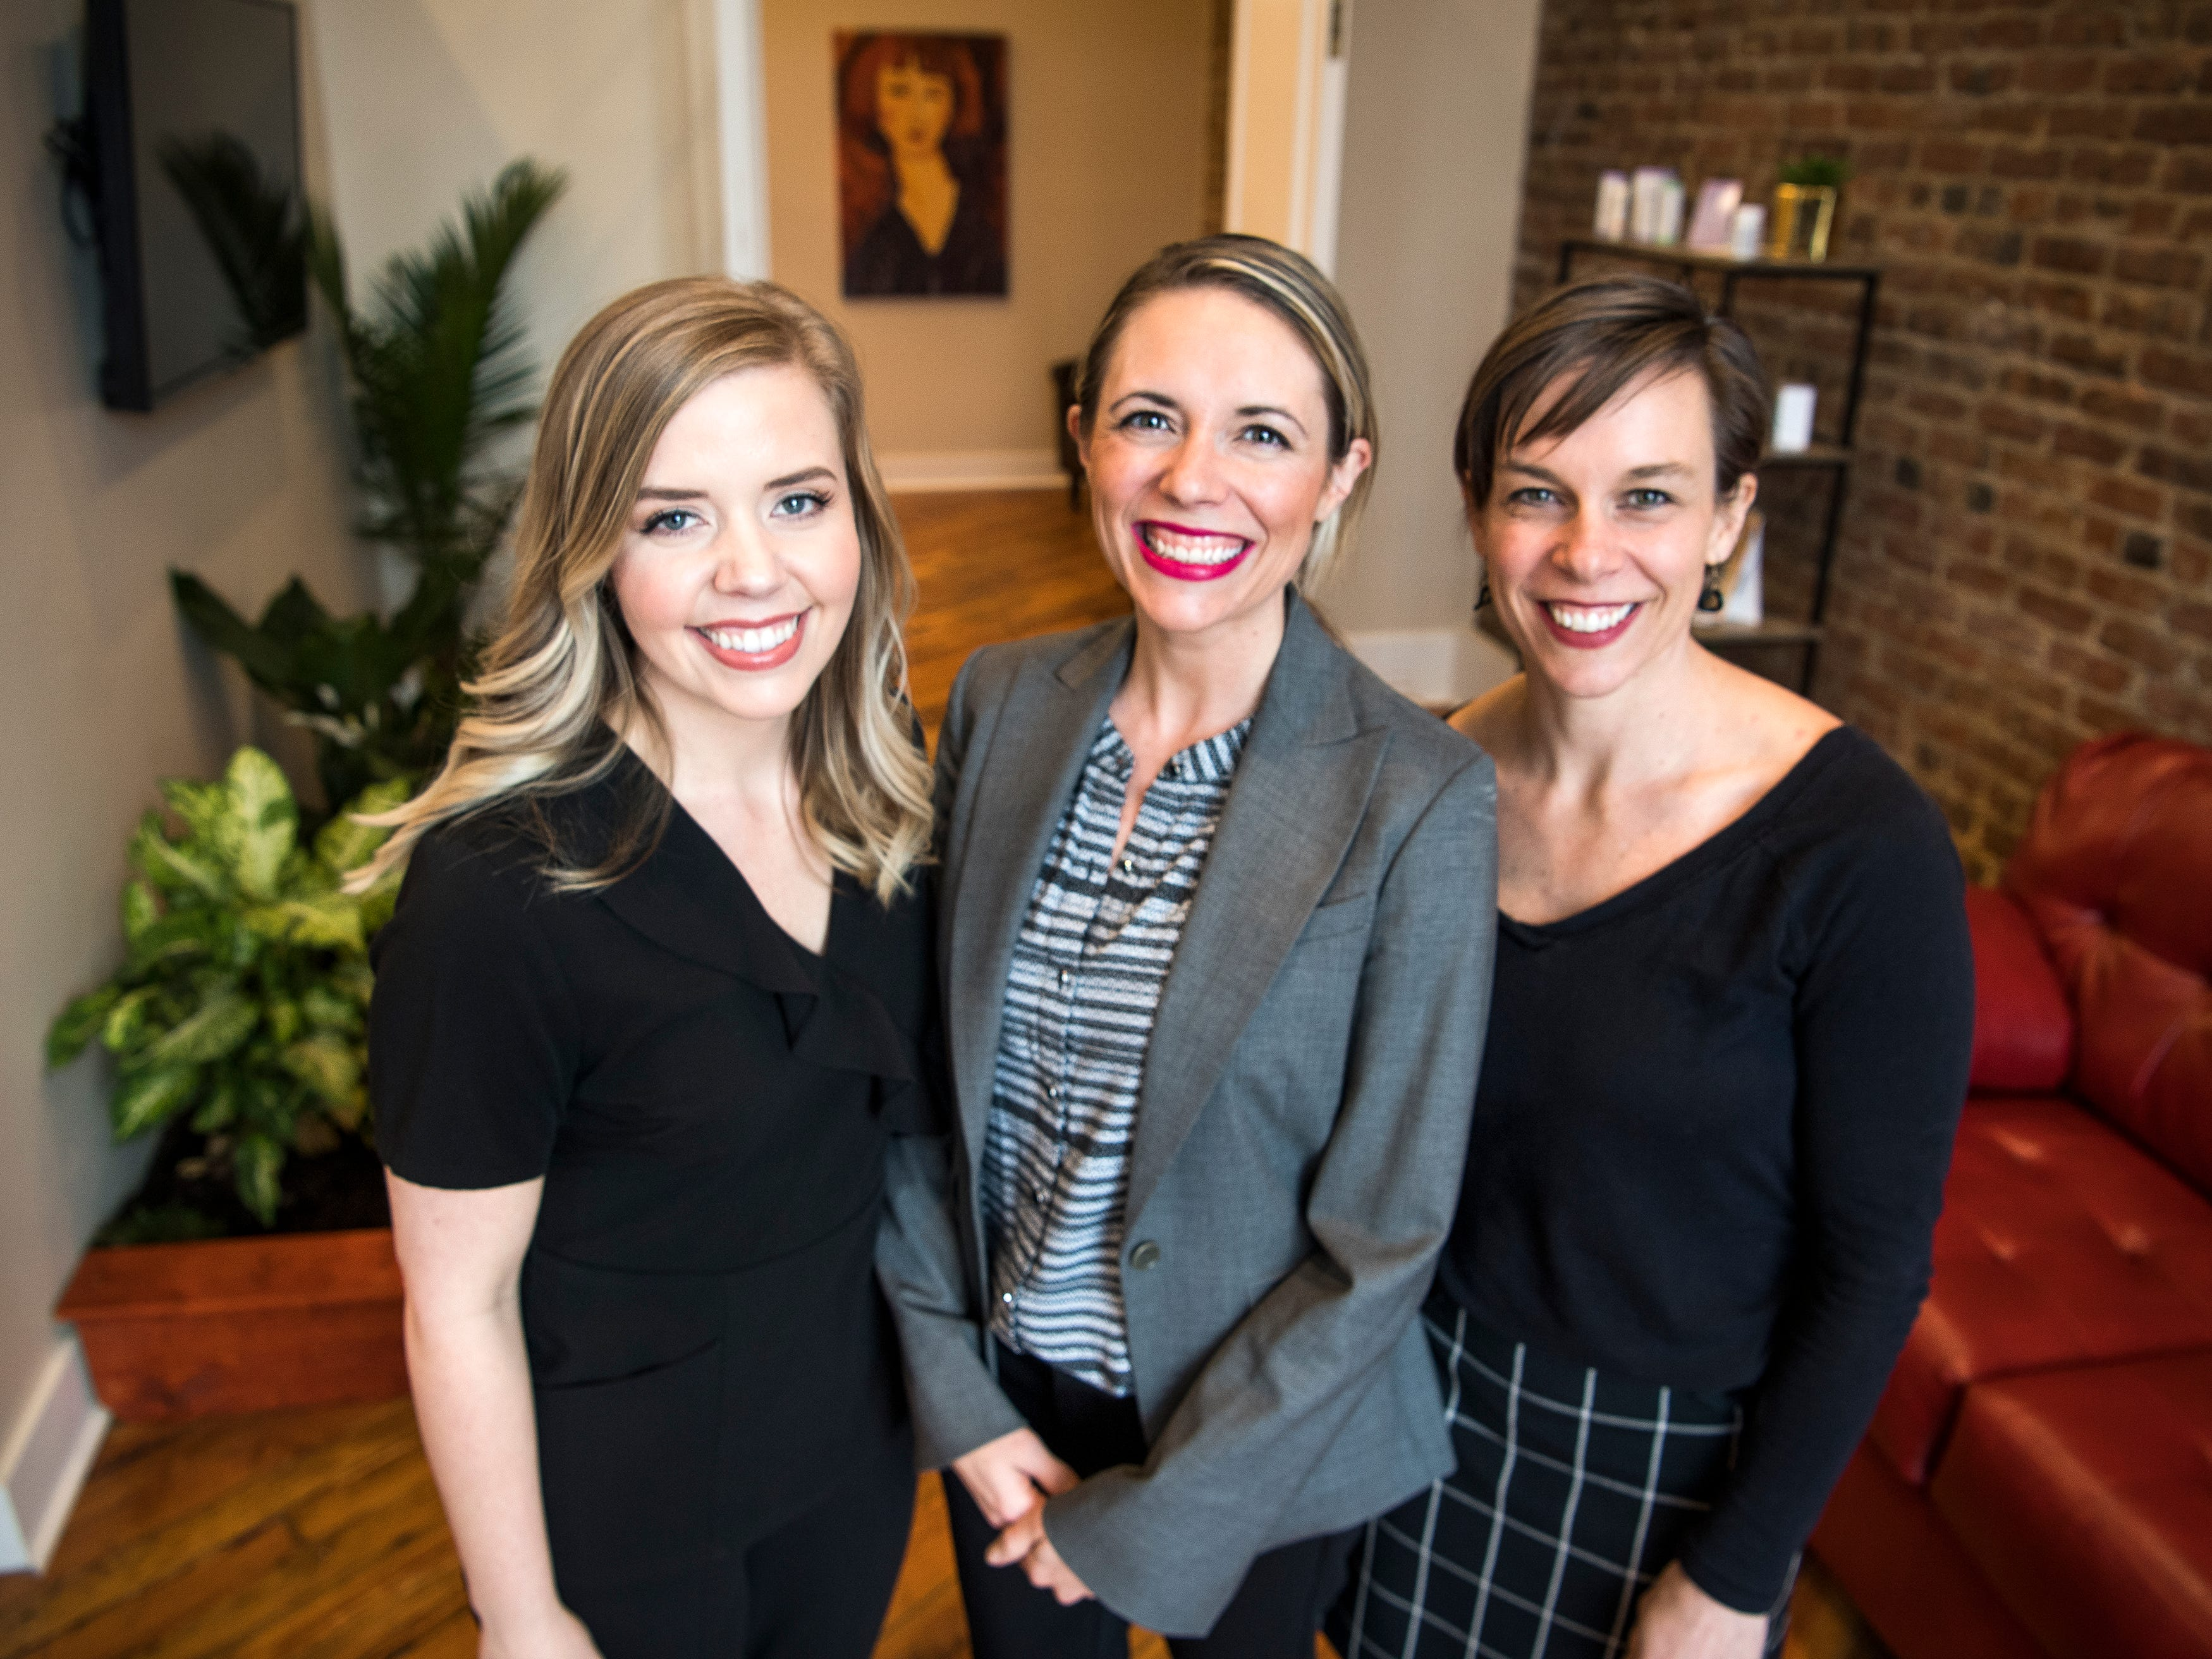 Mahala Brien, left, Ashton Byrne and Jessica Etheridge work at Old City MedSpa in downtown Knoxville.